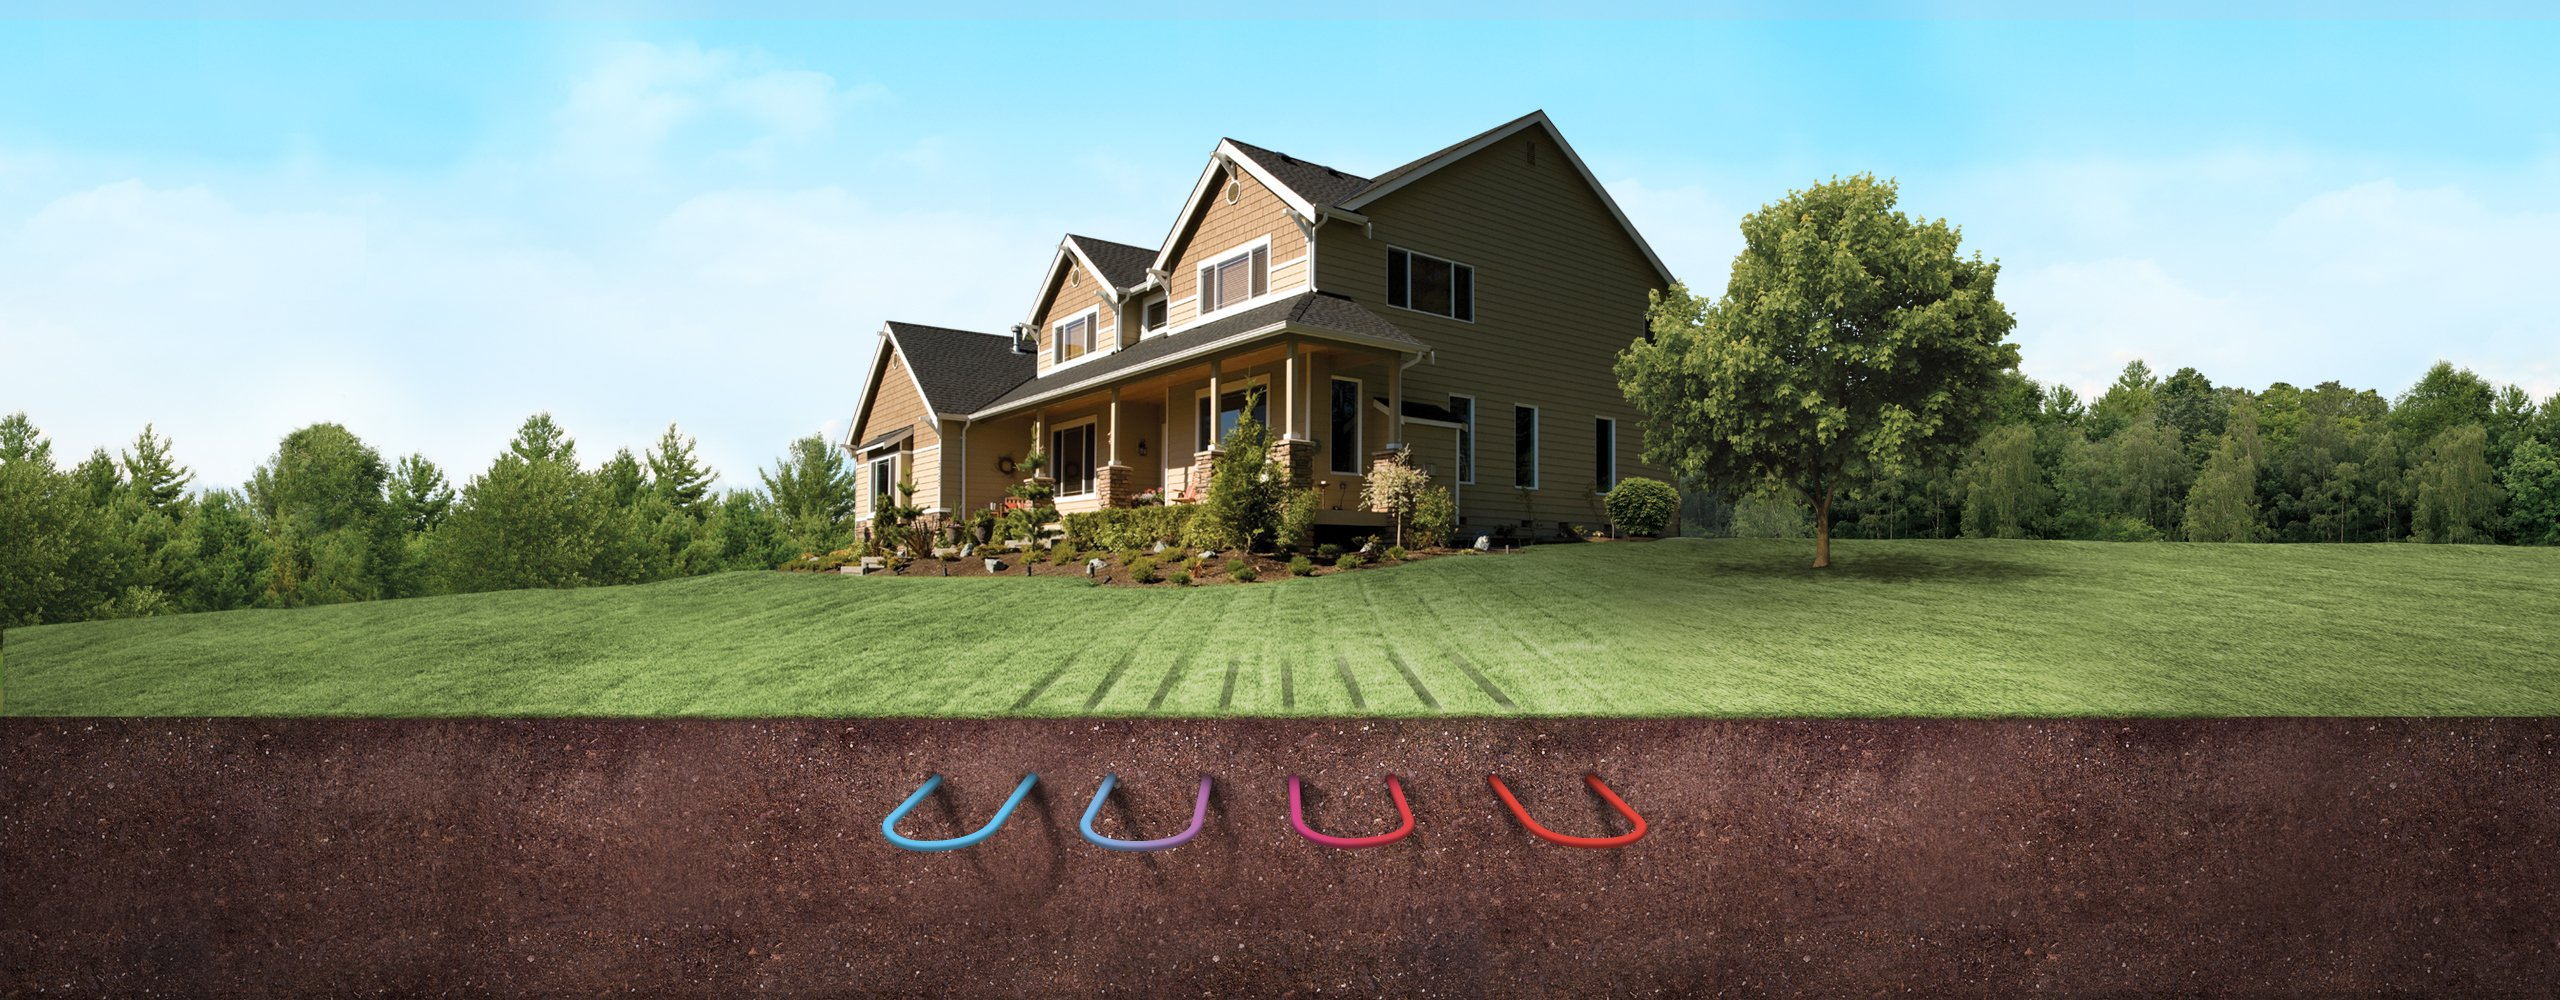 Geothermal is the greenest and most comfortable heating and